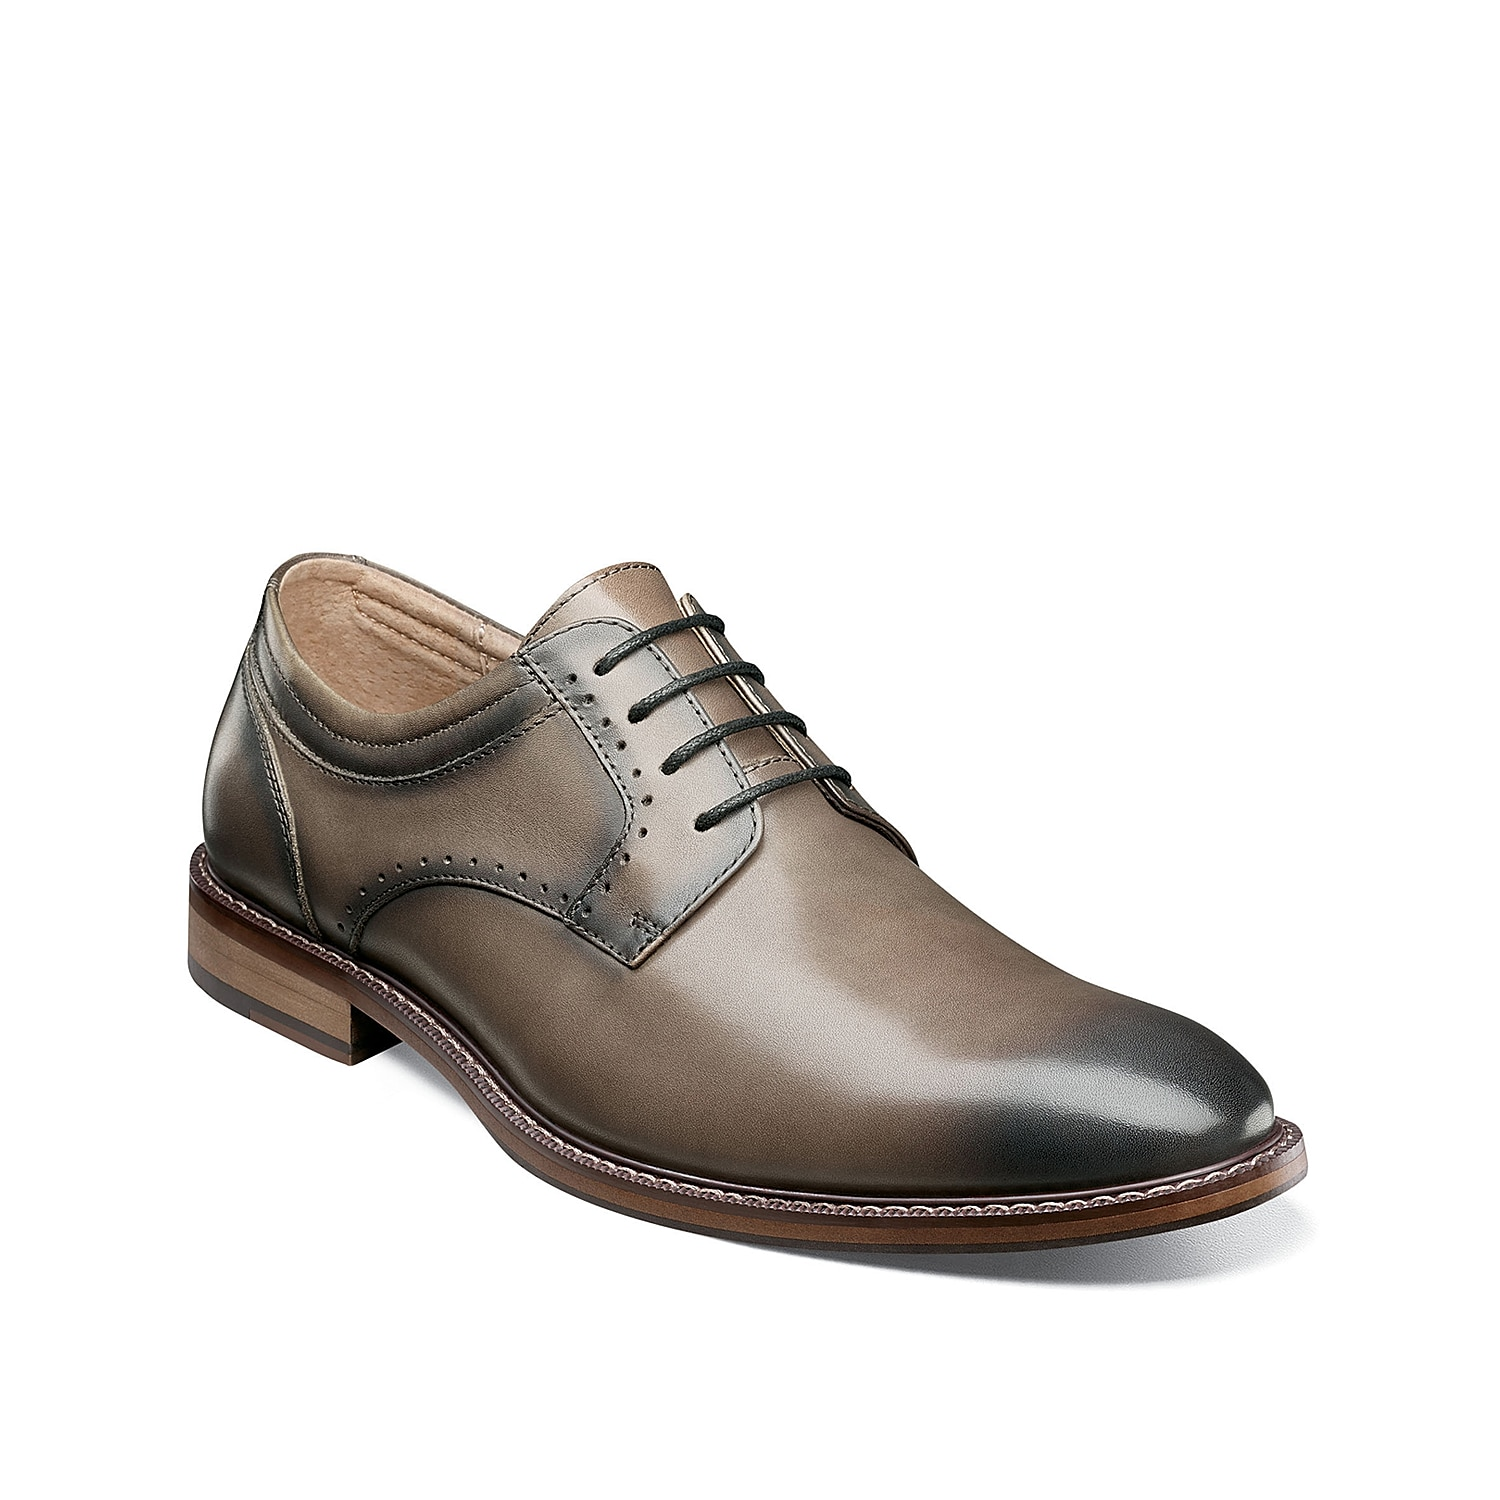 The Faulkner oxford from Stacy Adams features a traditional design with modern updates. This leather lace-up features a memory foam footbed for all day comfort!